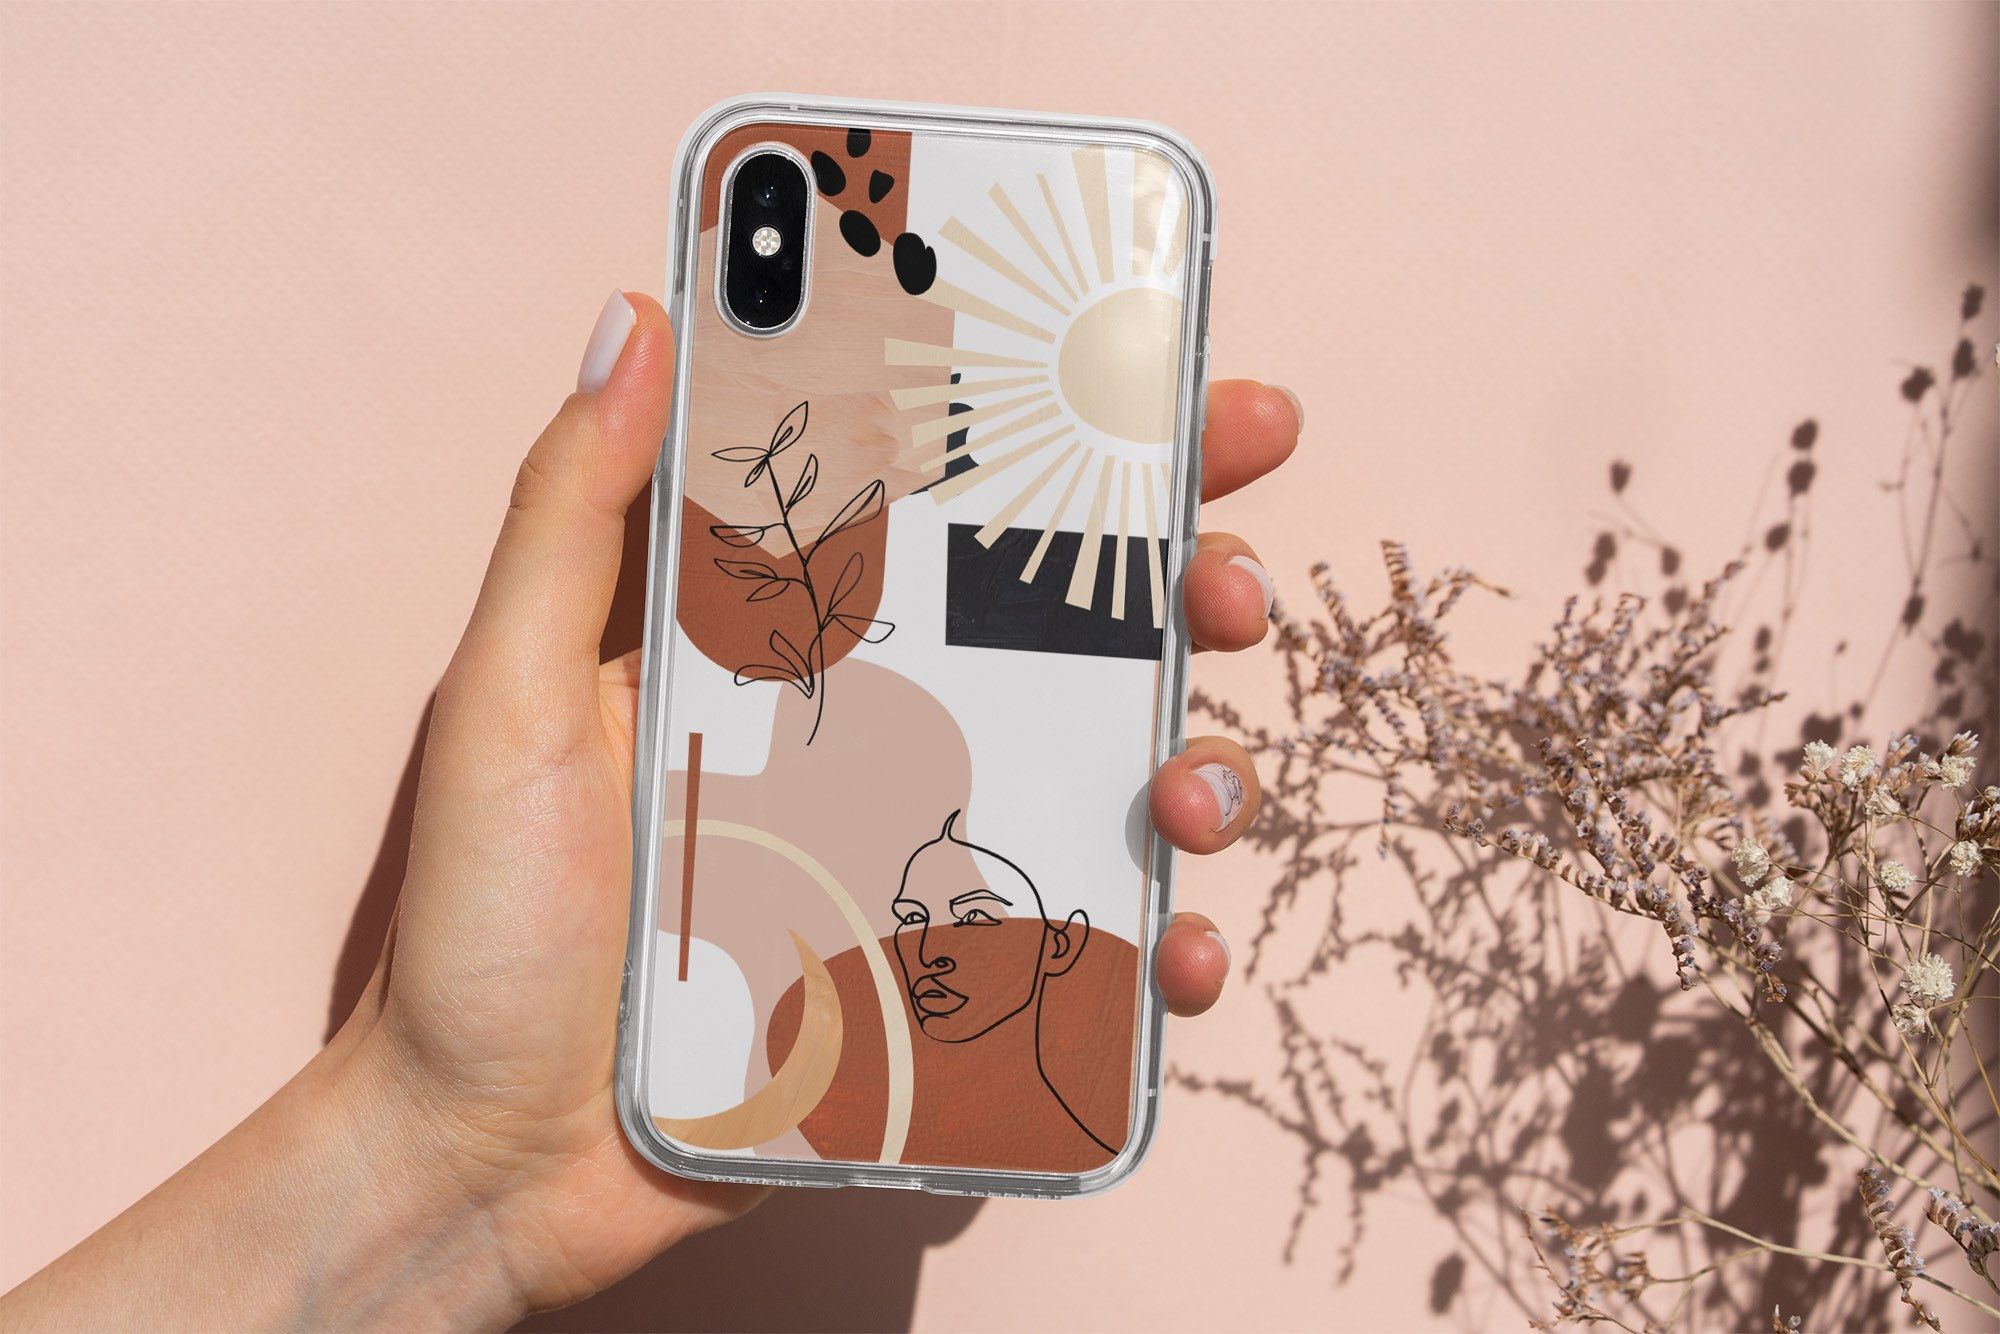 Abstract aesthetic phone case iphone 12 11 pro max xr xs